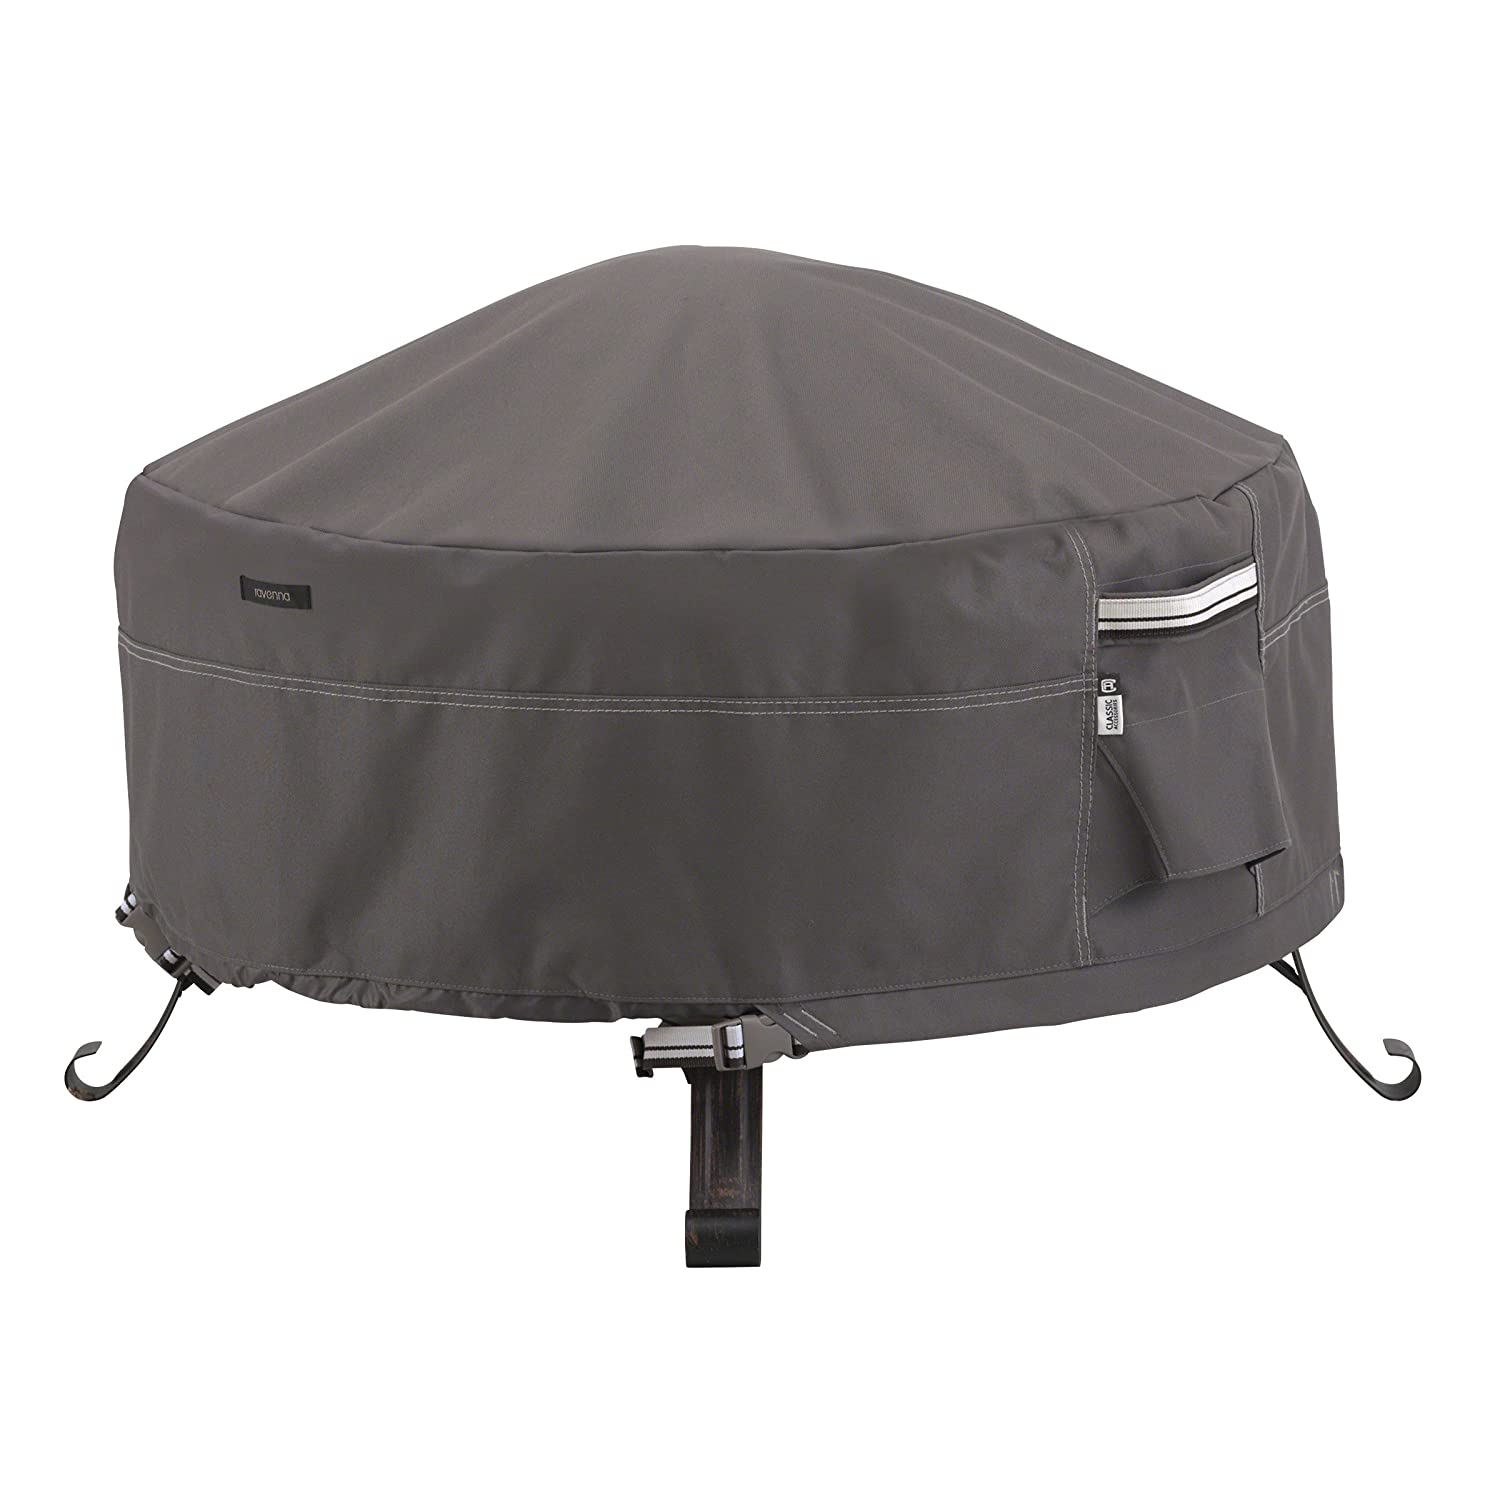 Classic Accessories Ravenna Round Fire Pit/Table Cover, 30-Inch